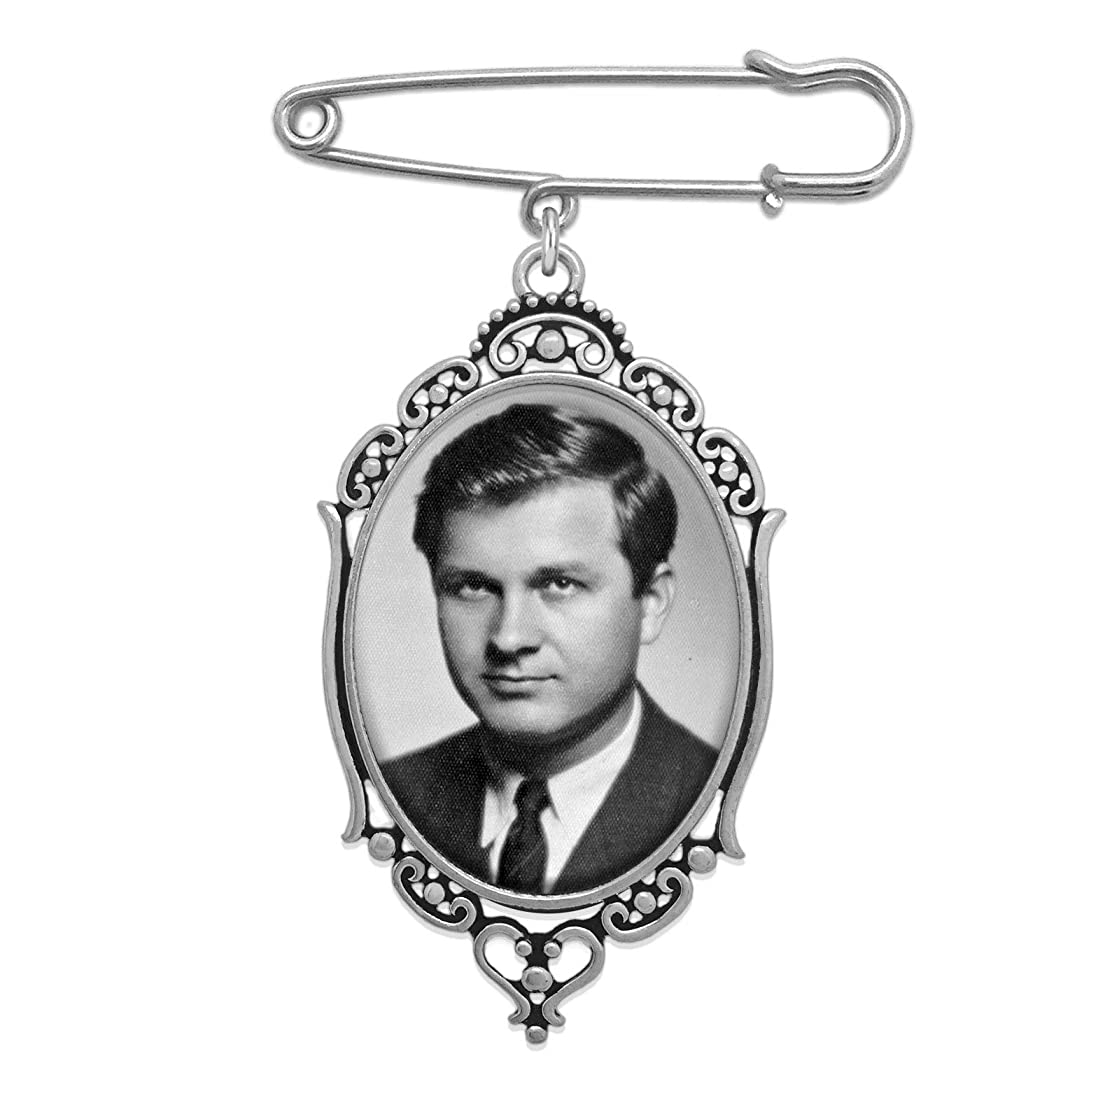 Wedding Boutonniere Bouquet Charm Pin Oval Photo Charm Mother of The Bride Gift for Groom w/Photo Resizing Software